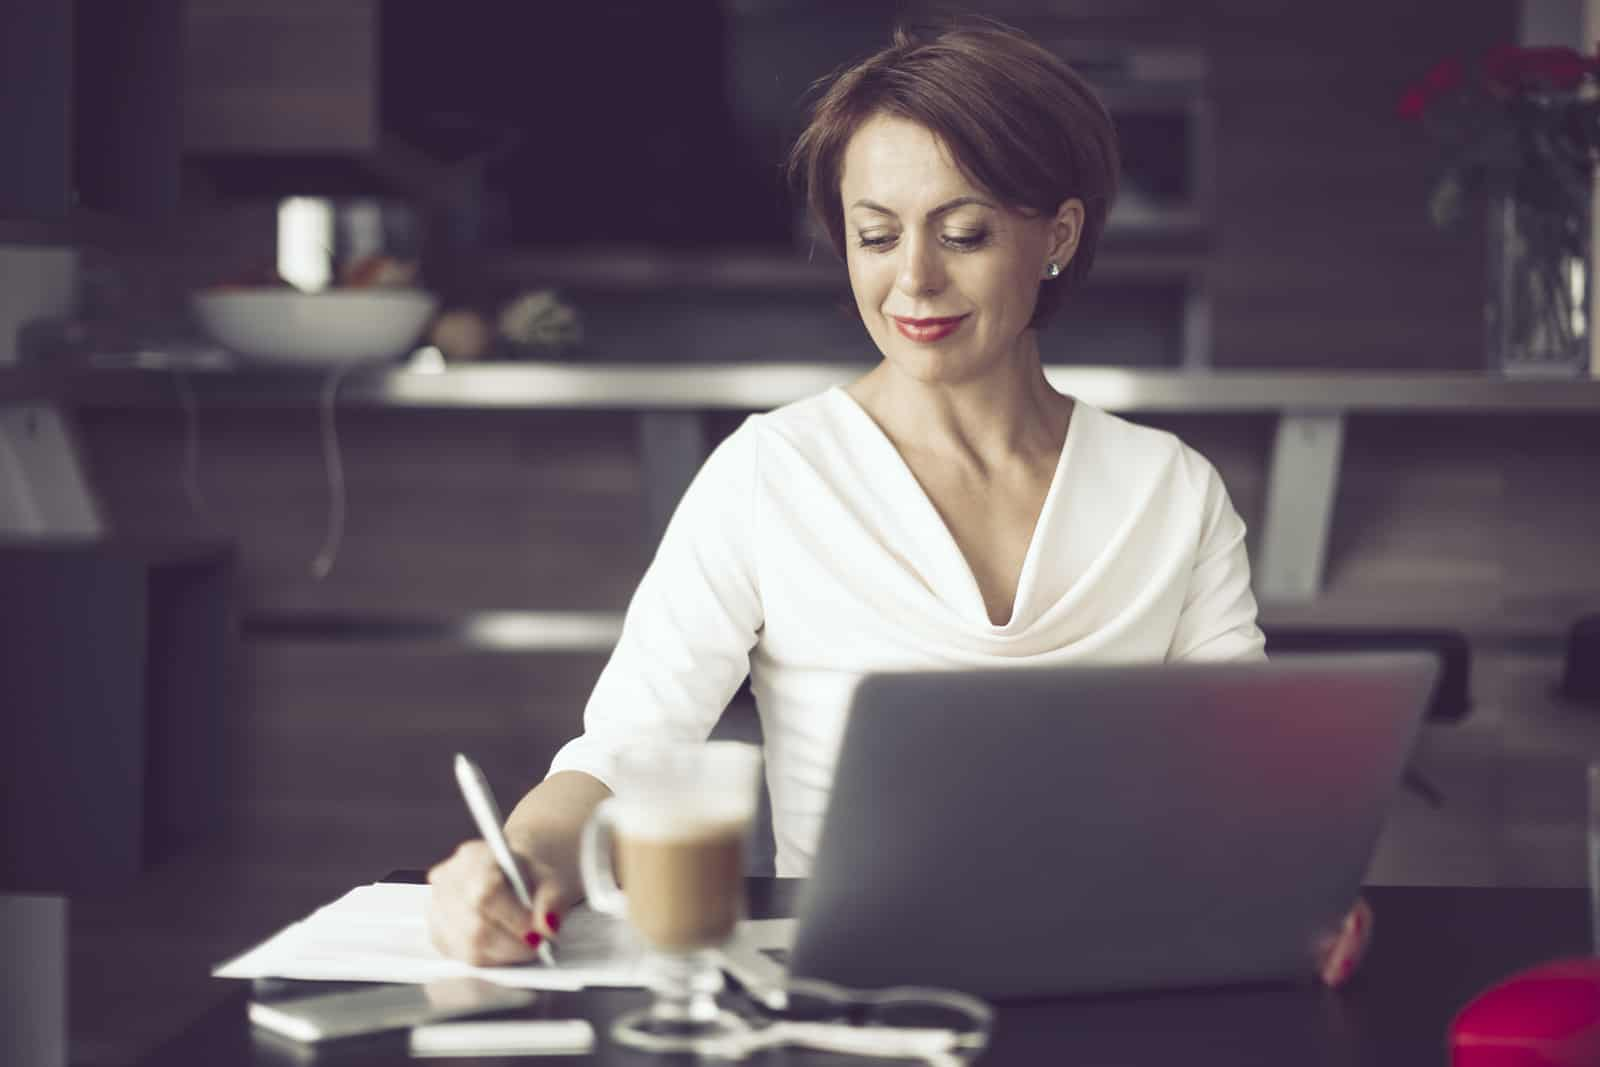 Female real estate appraiser working at home, preparing for a luxury home inspection